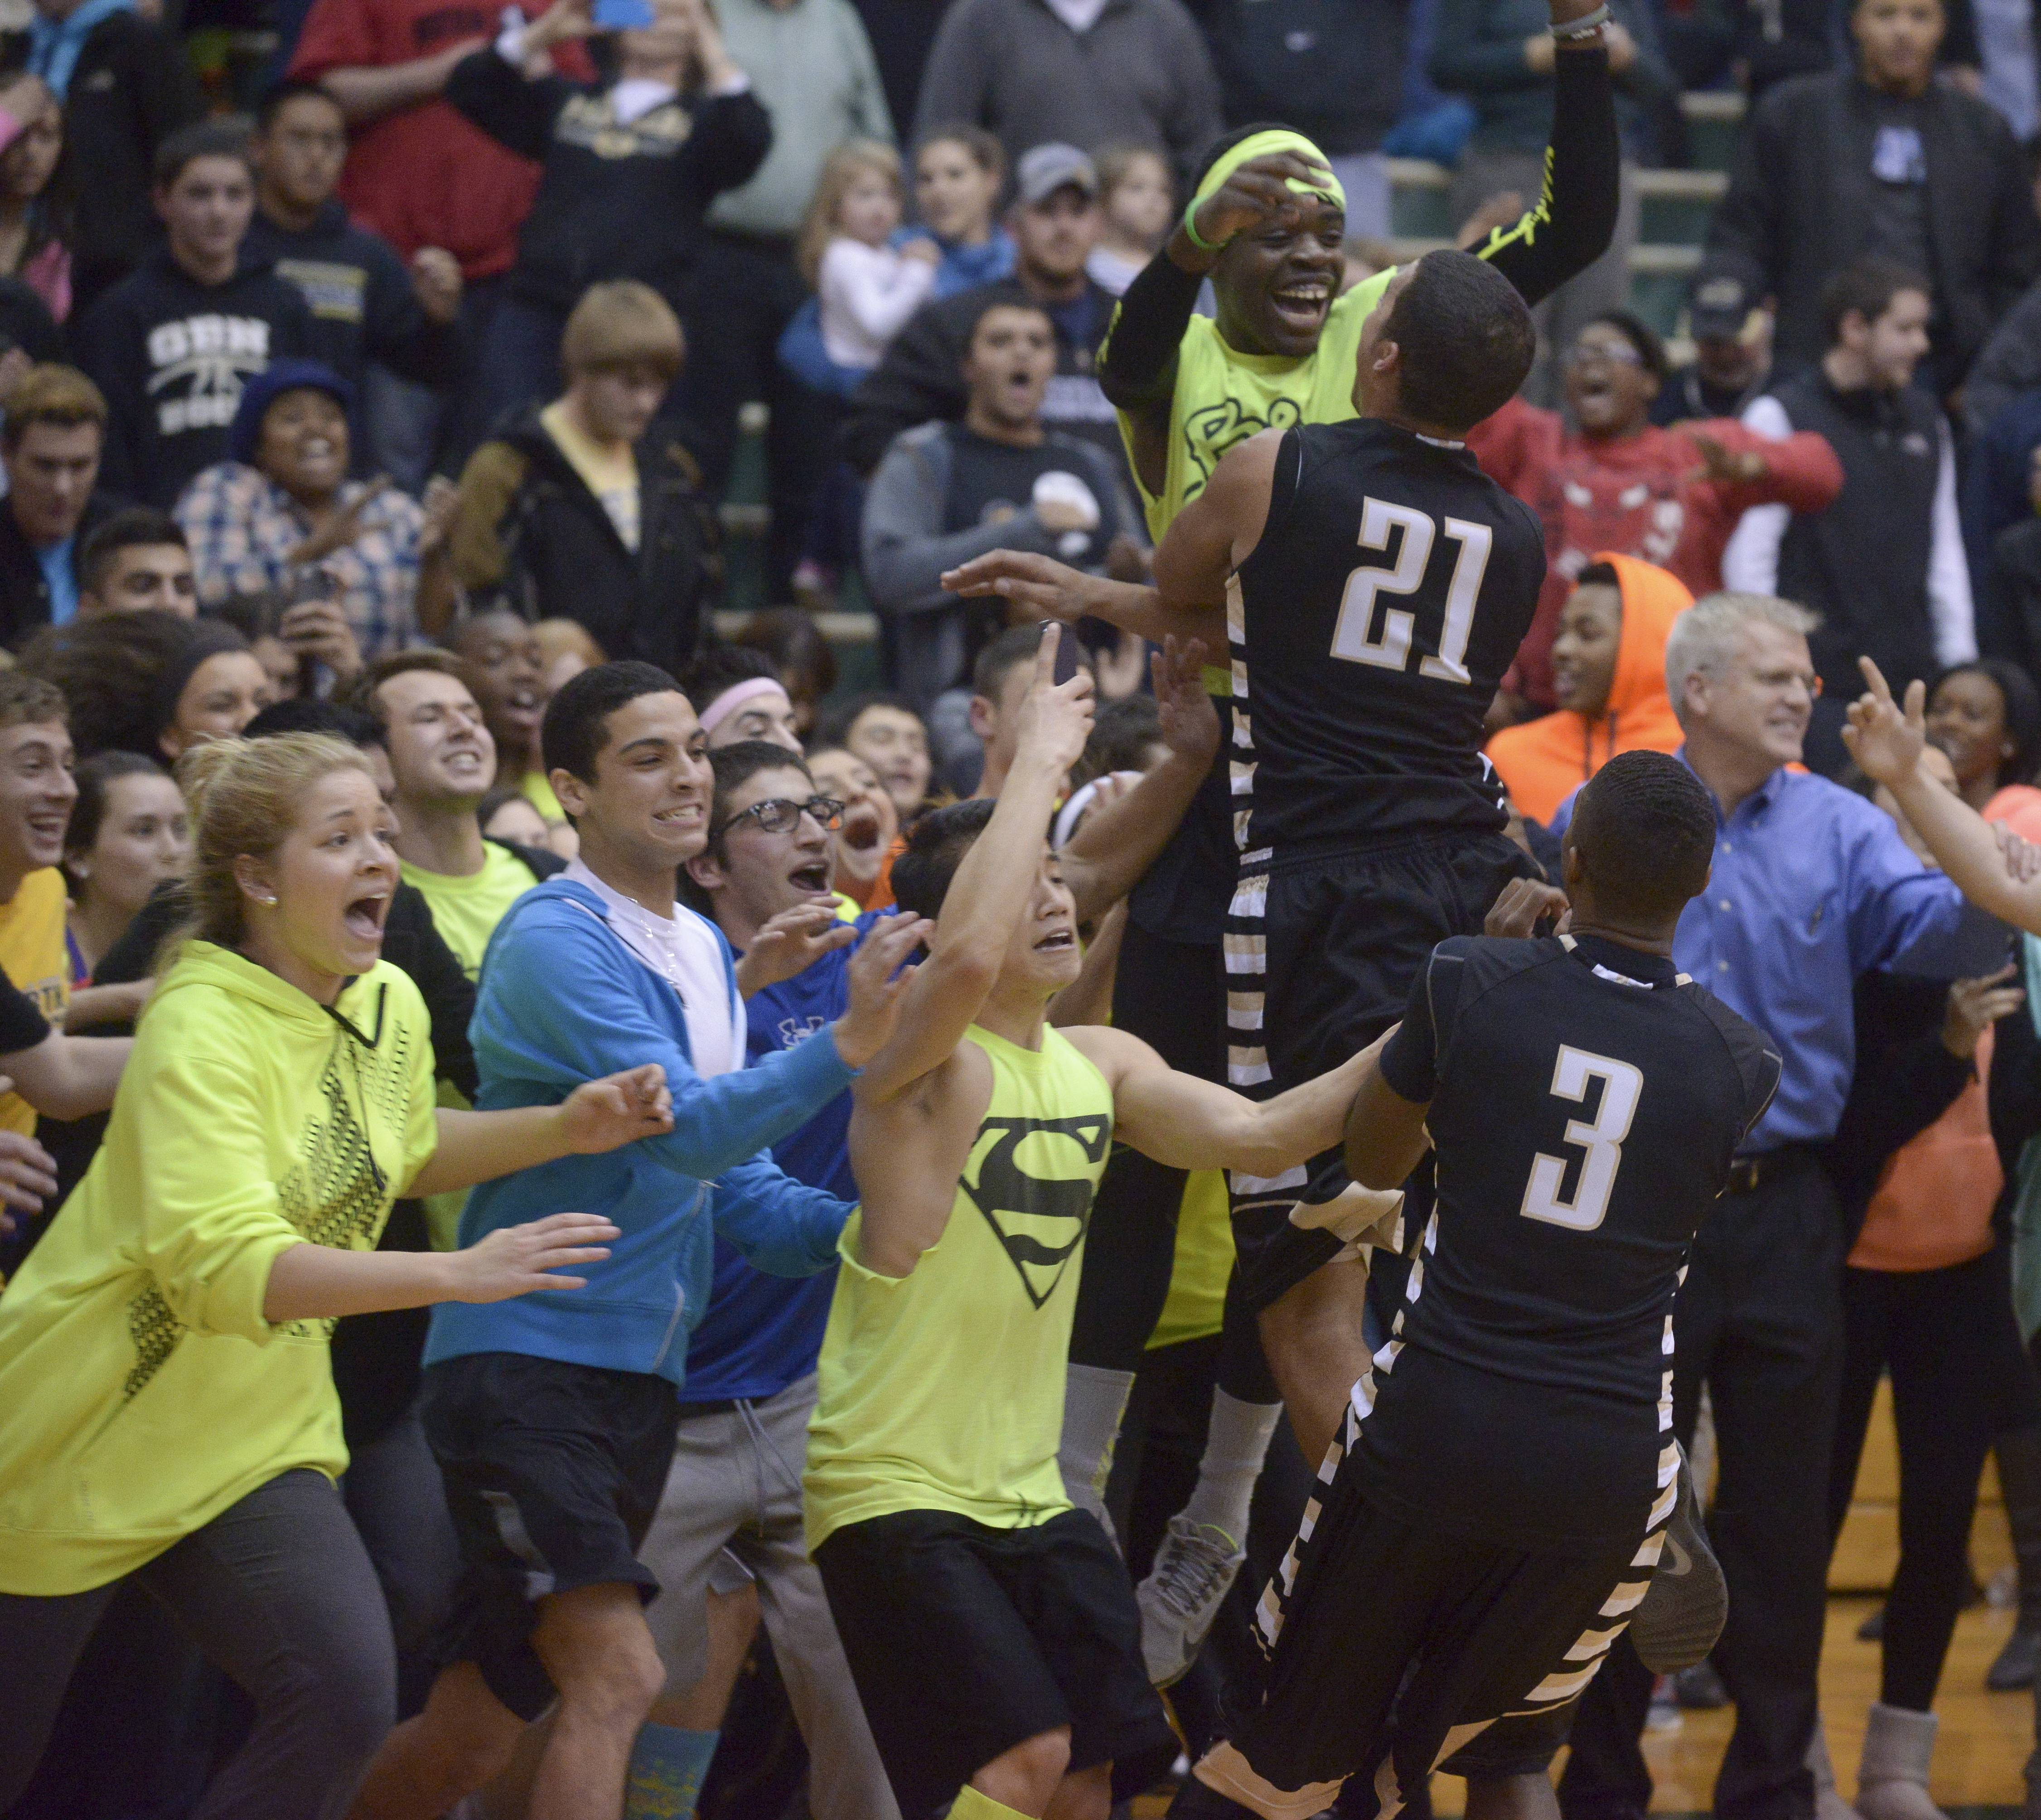 Glenbard North's Kendall Holbert celebrates with his teammates.